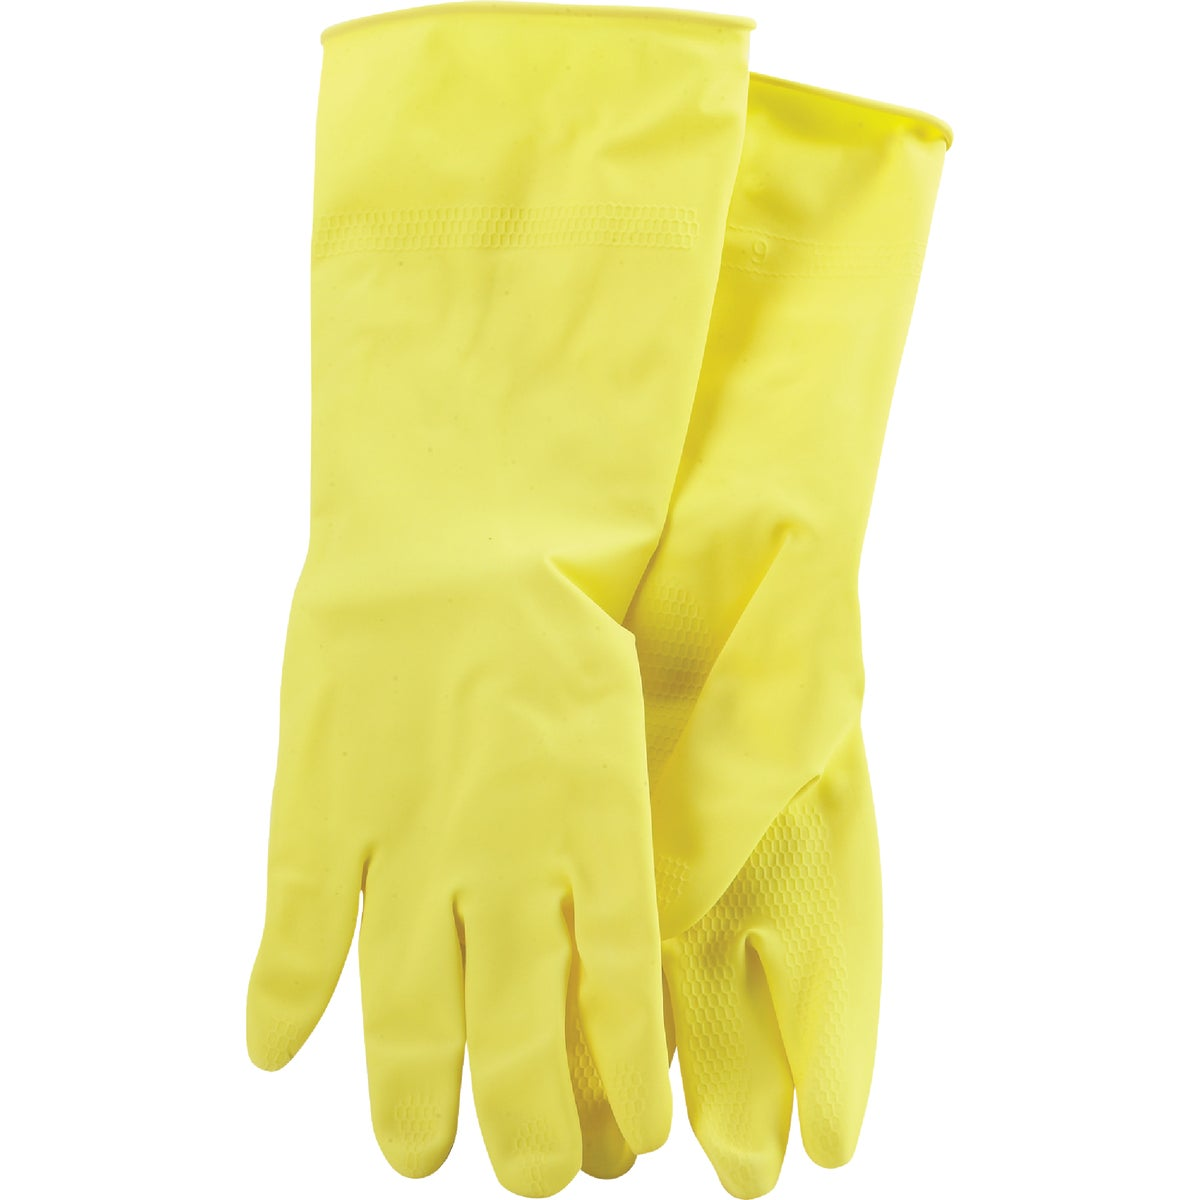 LARGE LATEX GLOVES - 624373 by Do it Best